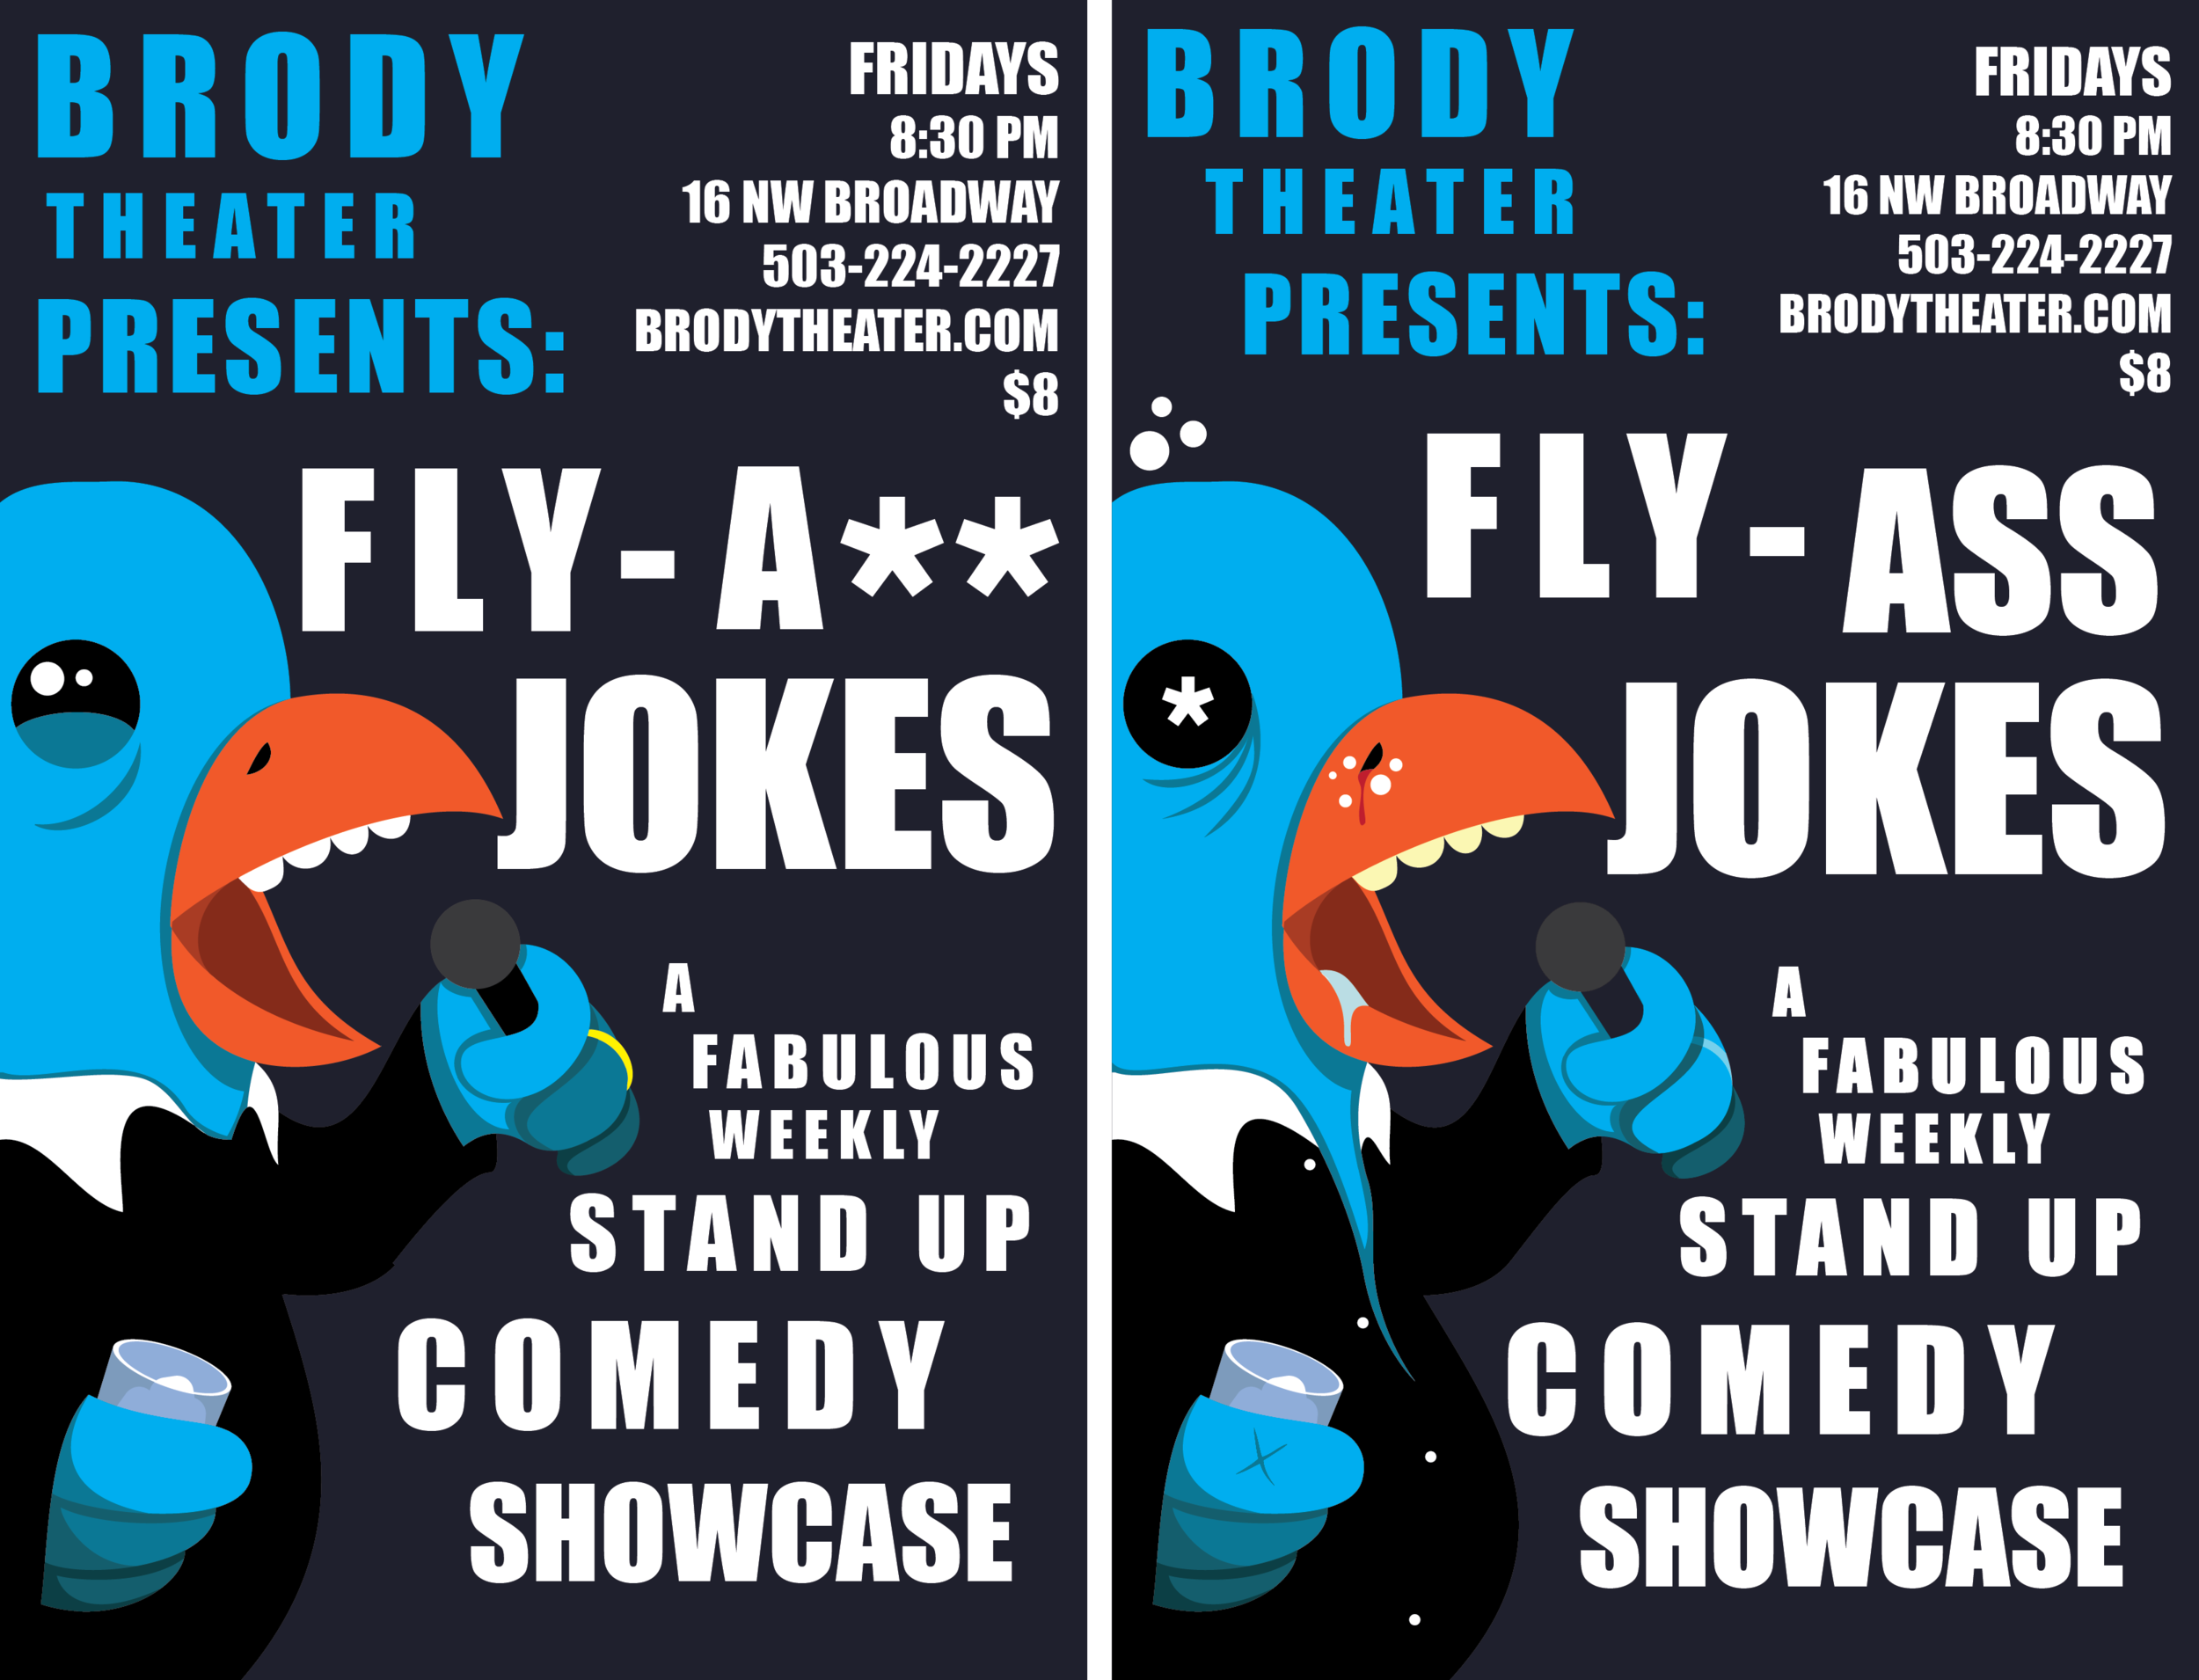 Fly-Ass Jokes Poster.png